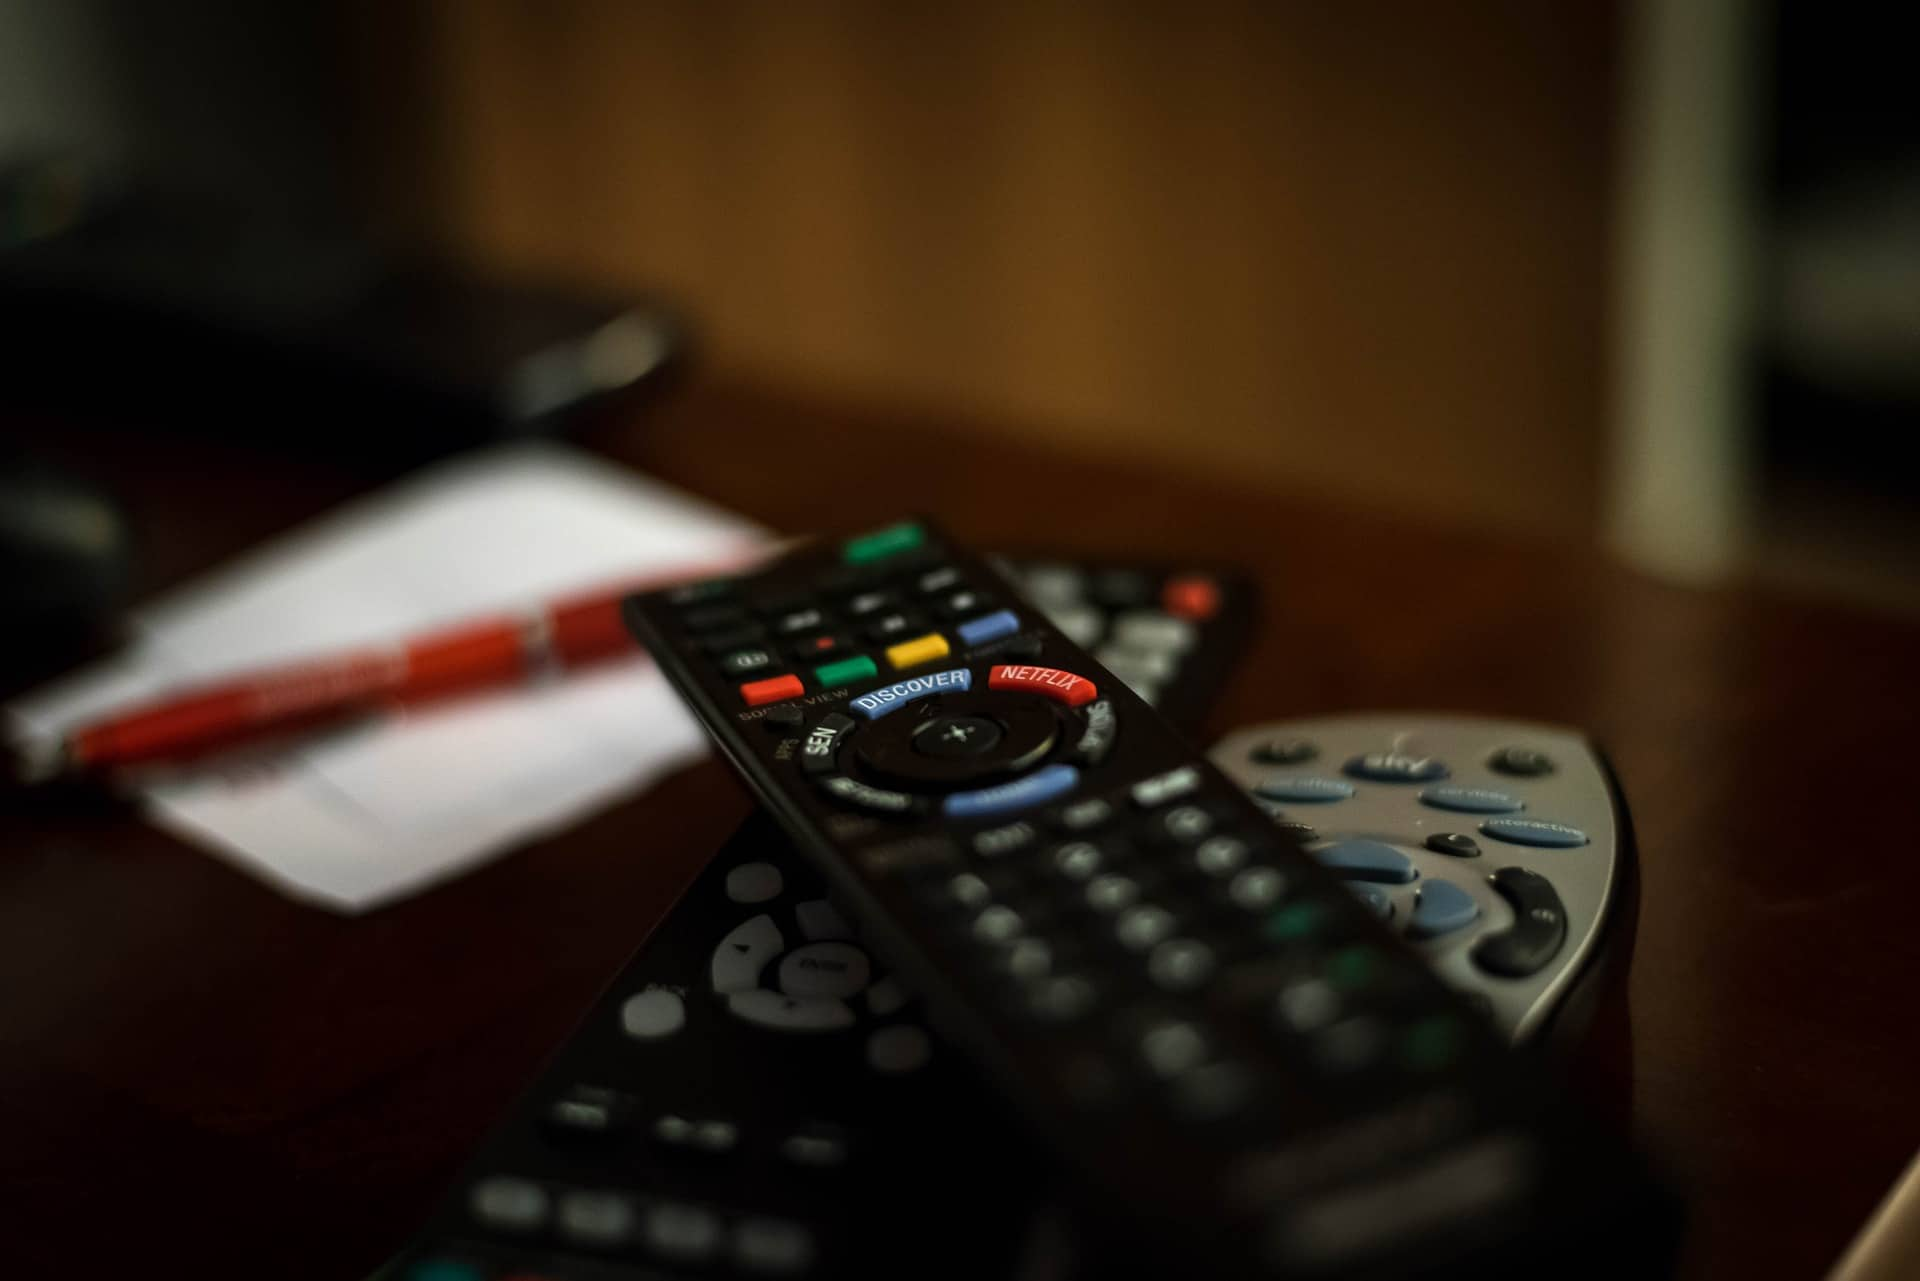 5 Best Kodi Remotes For 2017 2018 And Where To Buy Them Comparitech Very Simple Ir Remote Control Switch An Electrical Appliance Looking Better Integrate Into Your Home Theater Setup Weve Scoured The Market Researched Five Of So You Dont Have